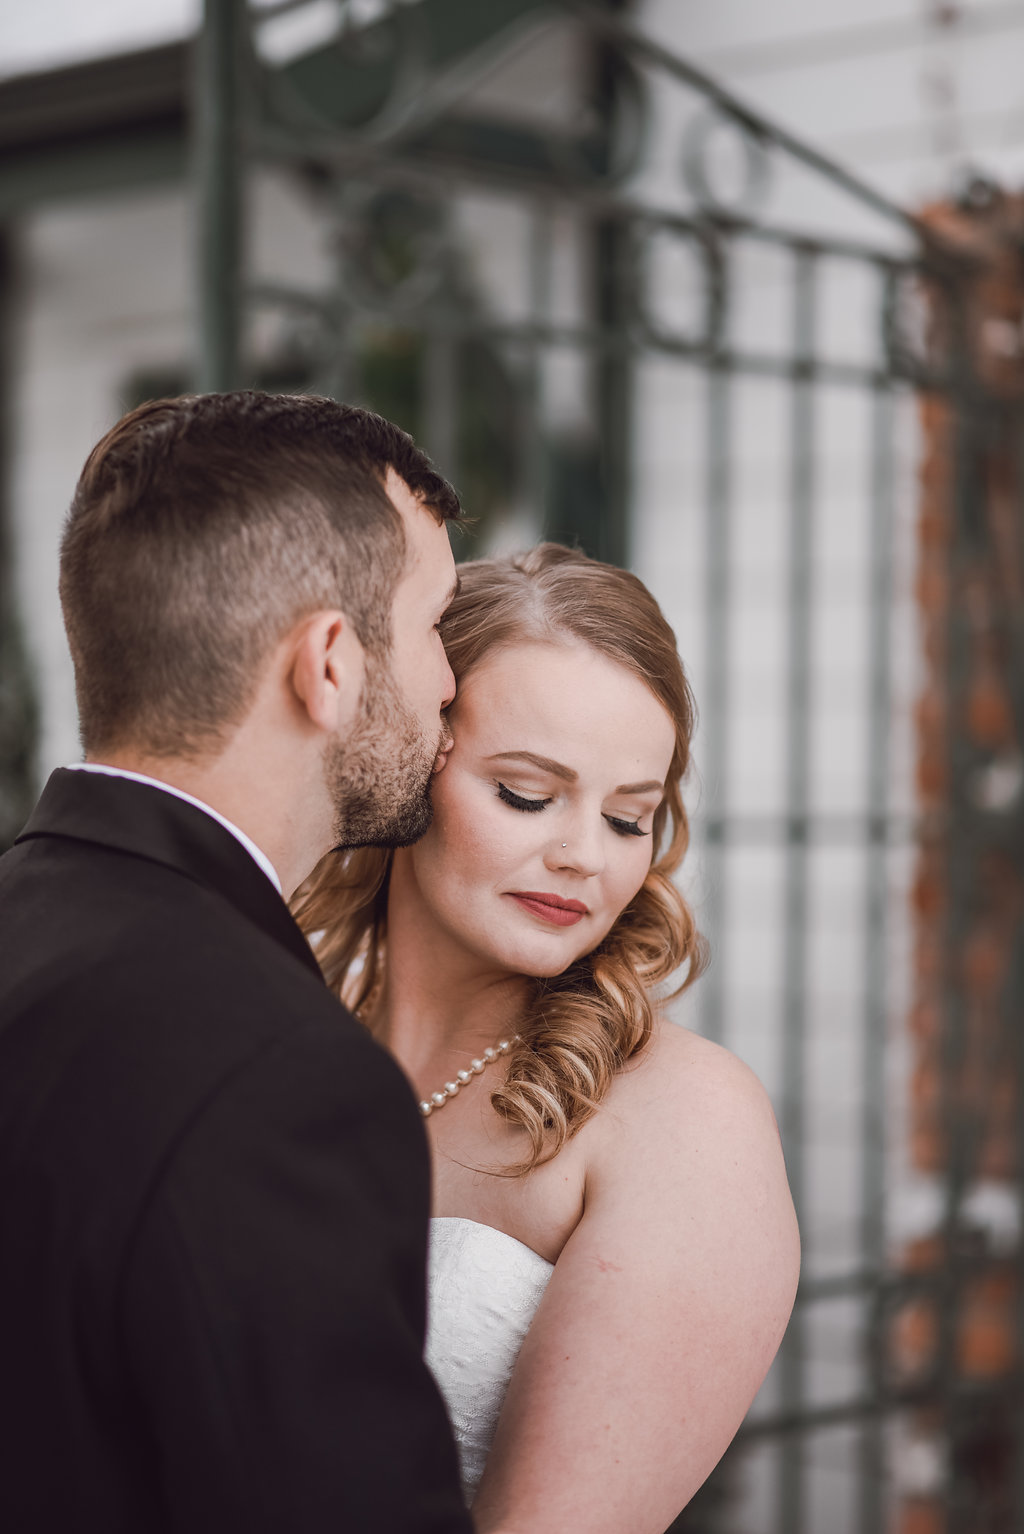 Romantic bride and groom portraits at Lionsgate Event Center, Colorado Wedding Photographer, Denver Wedding Photographer, Downtown Denver Wedding Photographer, Colorado Elopement Photographer, Rocky Mountain Wedding Photographer